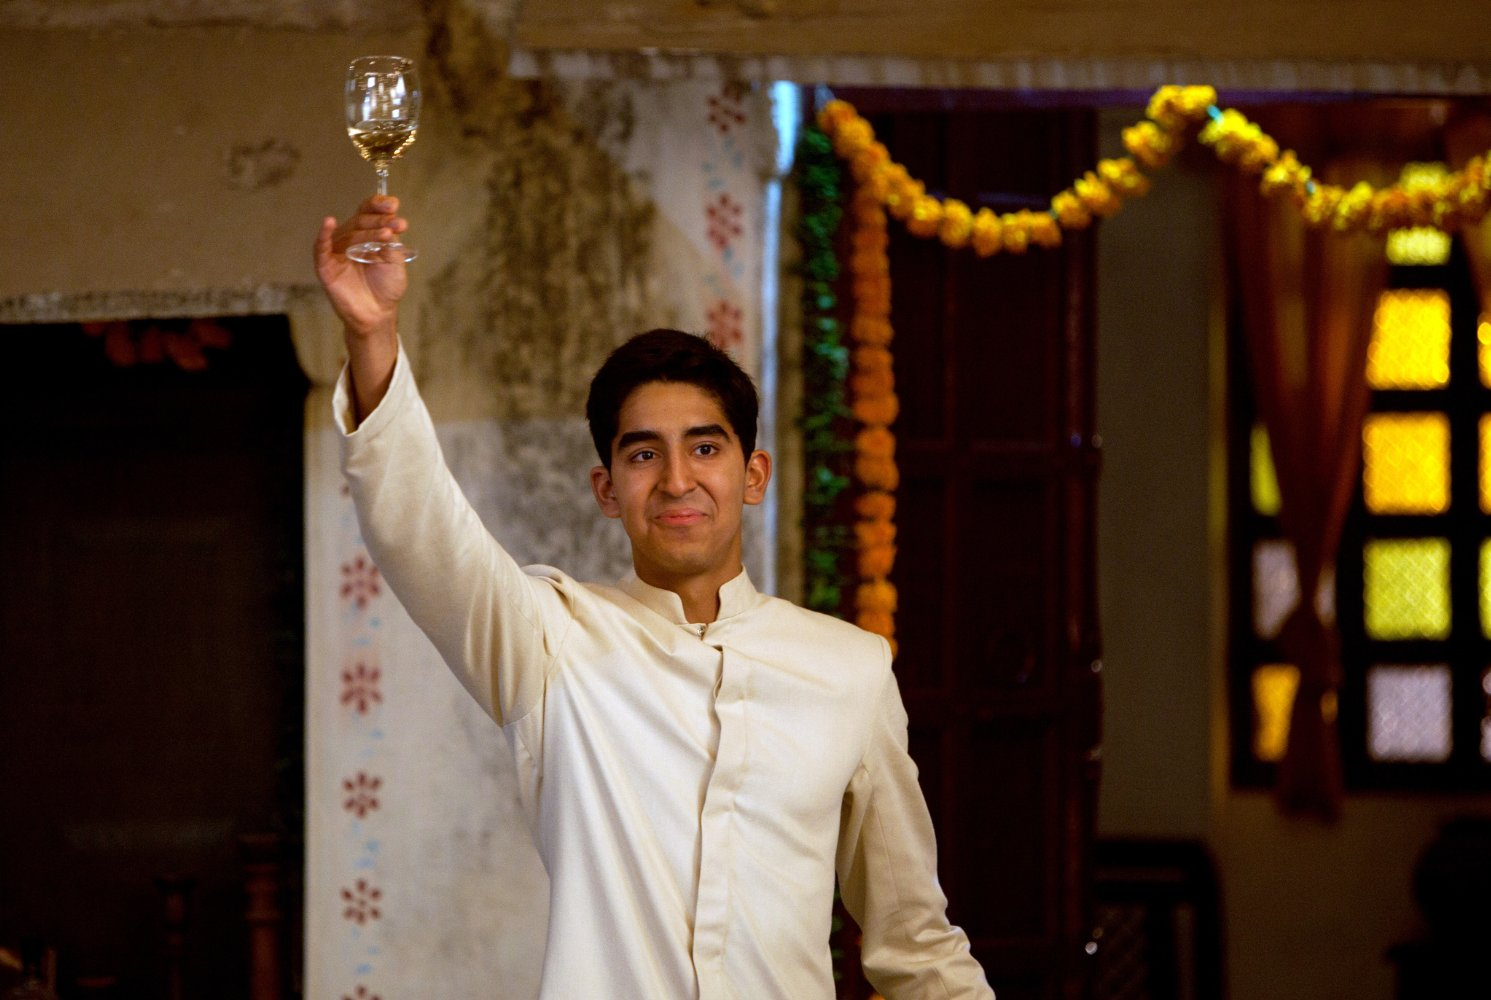 Dev Patel in The Best Exotic Marigold Hotel. (Twentieth Century Fox/IMDB)